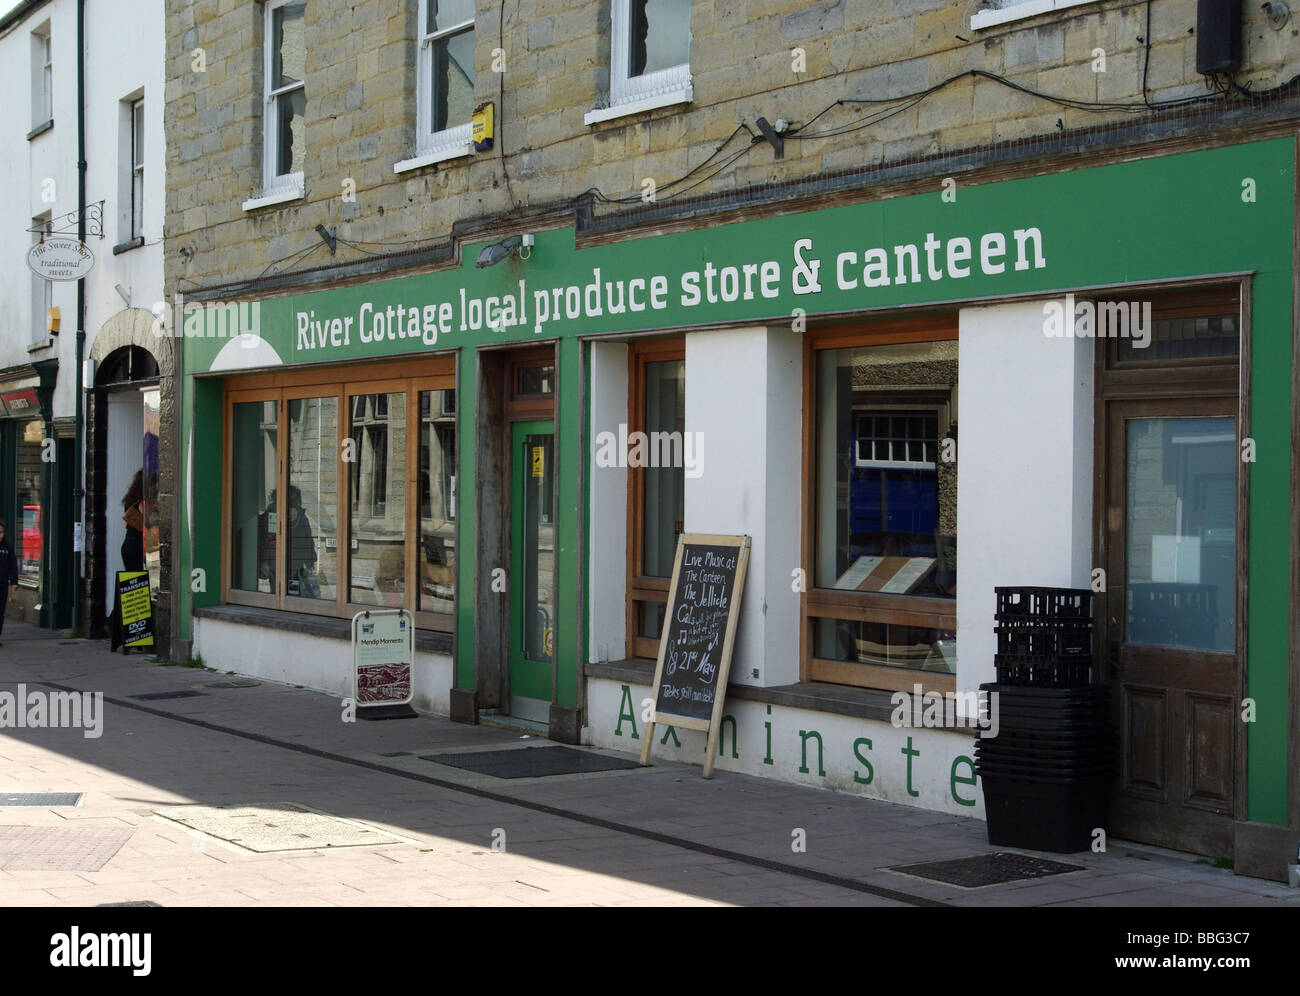 Hugh Fearnley-Whittingstall' s River Cafe shop and canteen in Axminster, Devon, UK - Stock Image